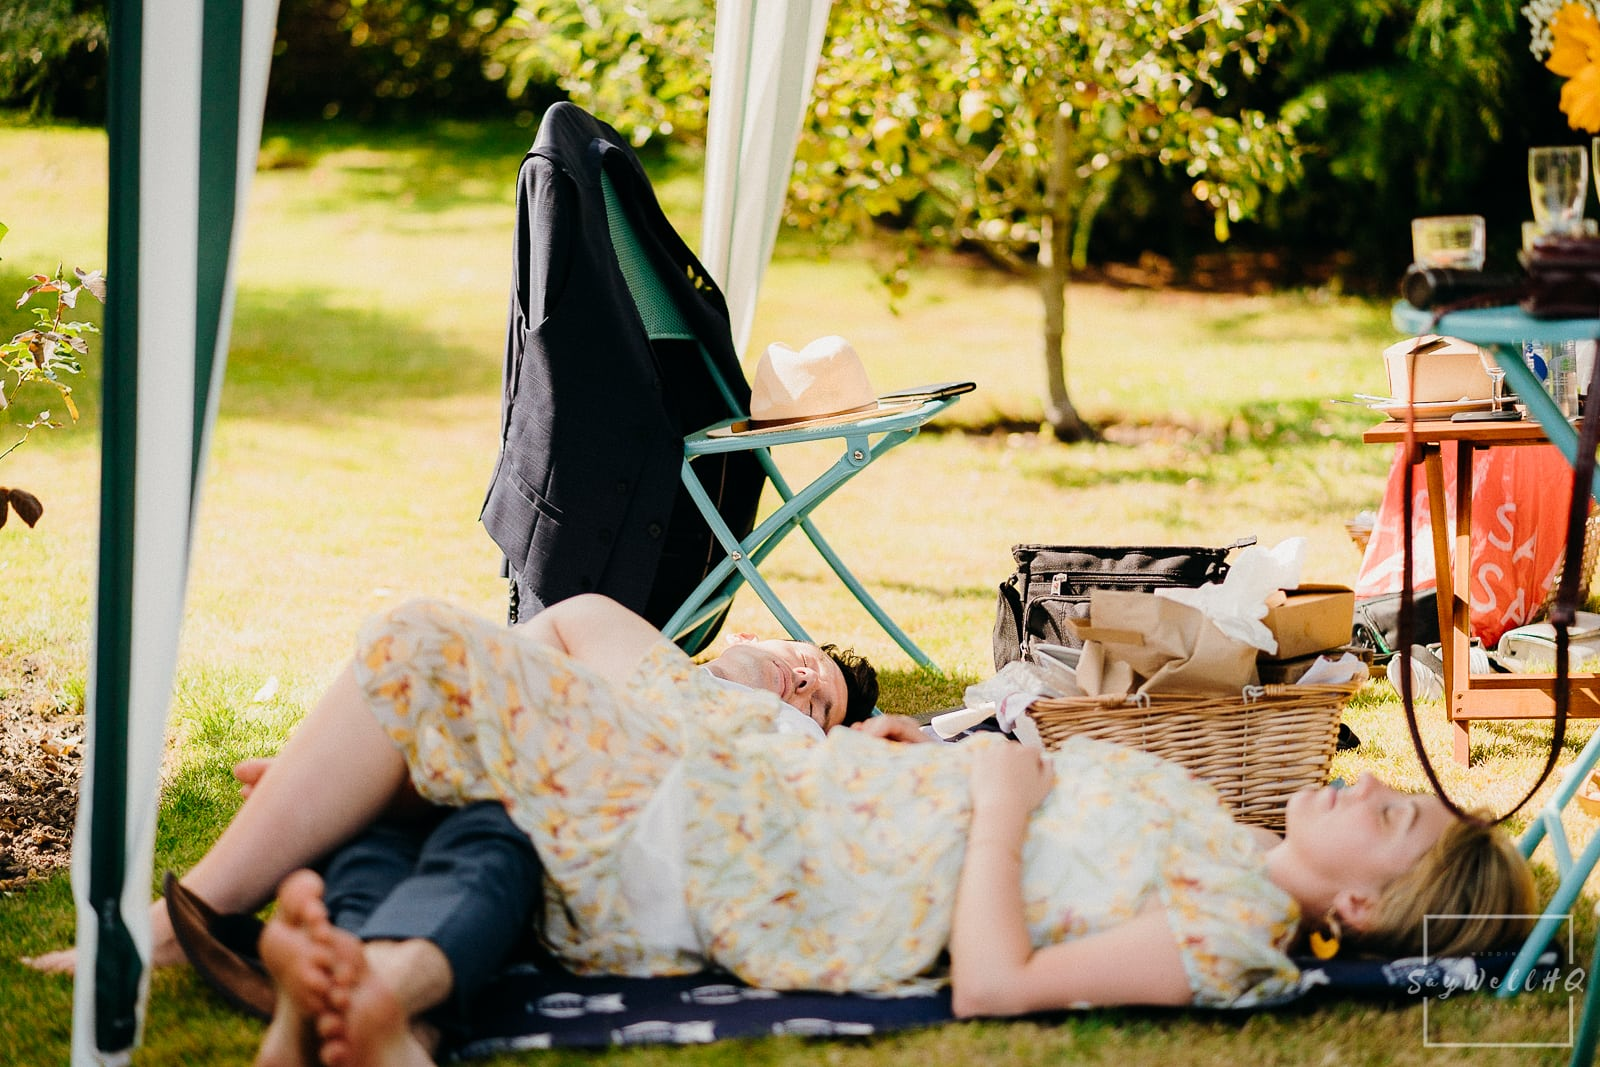 Derby Church Wedding Photography - Wedding guests enjoying the afternoon picnic and summer sunshine